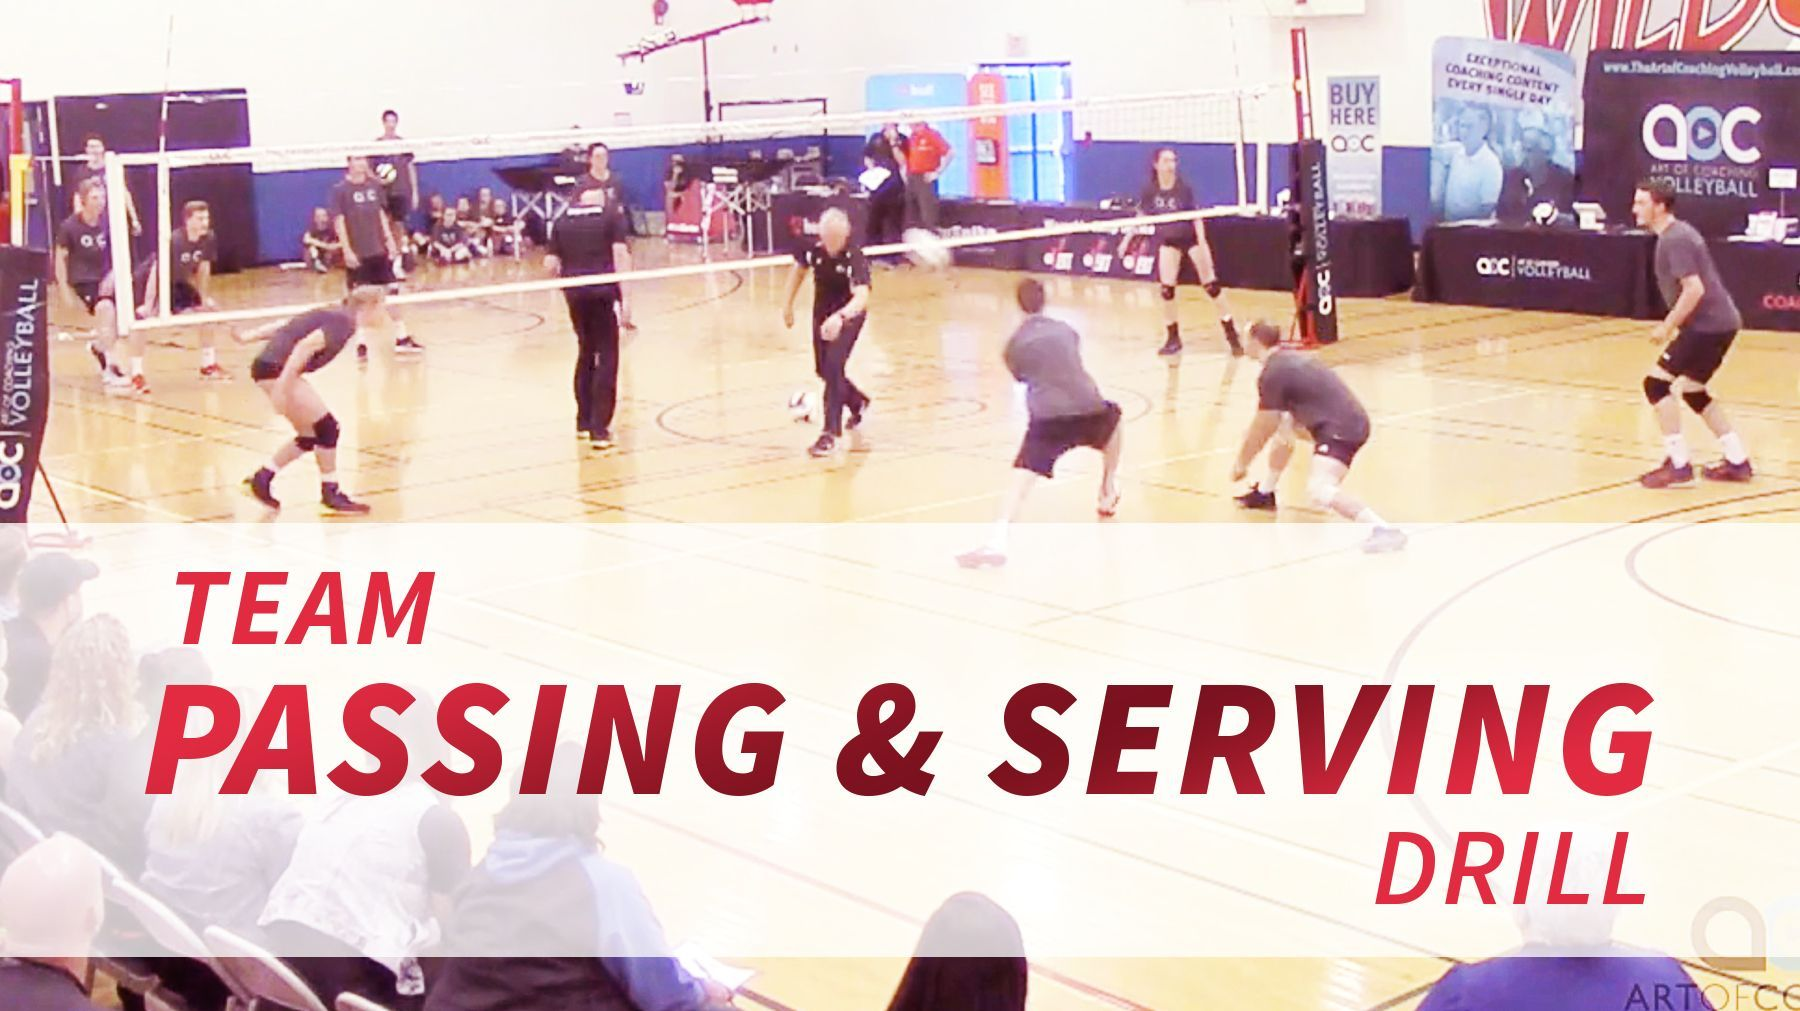 Team Passing And Serving Drill The Art Of Coaching Volleyball Coaching Volleyball Volleyball Practice Drill